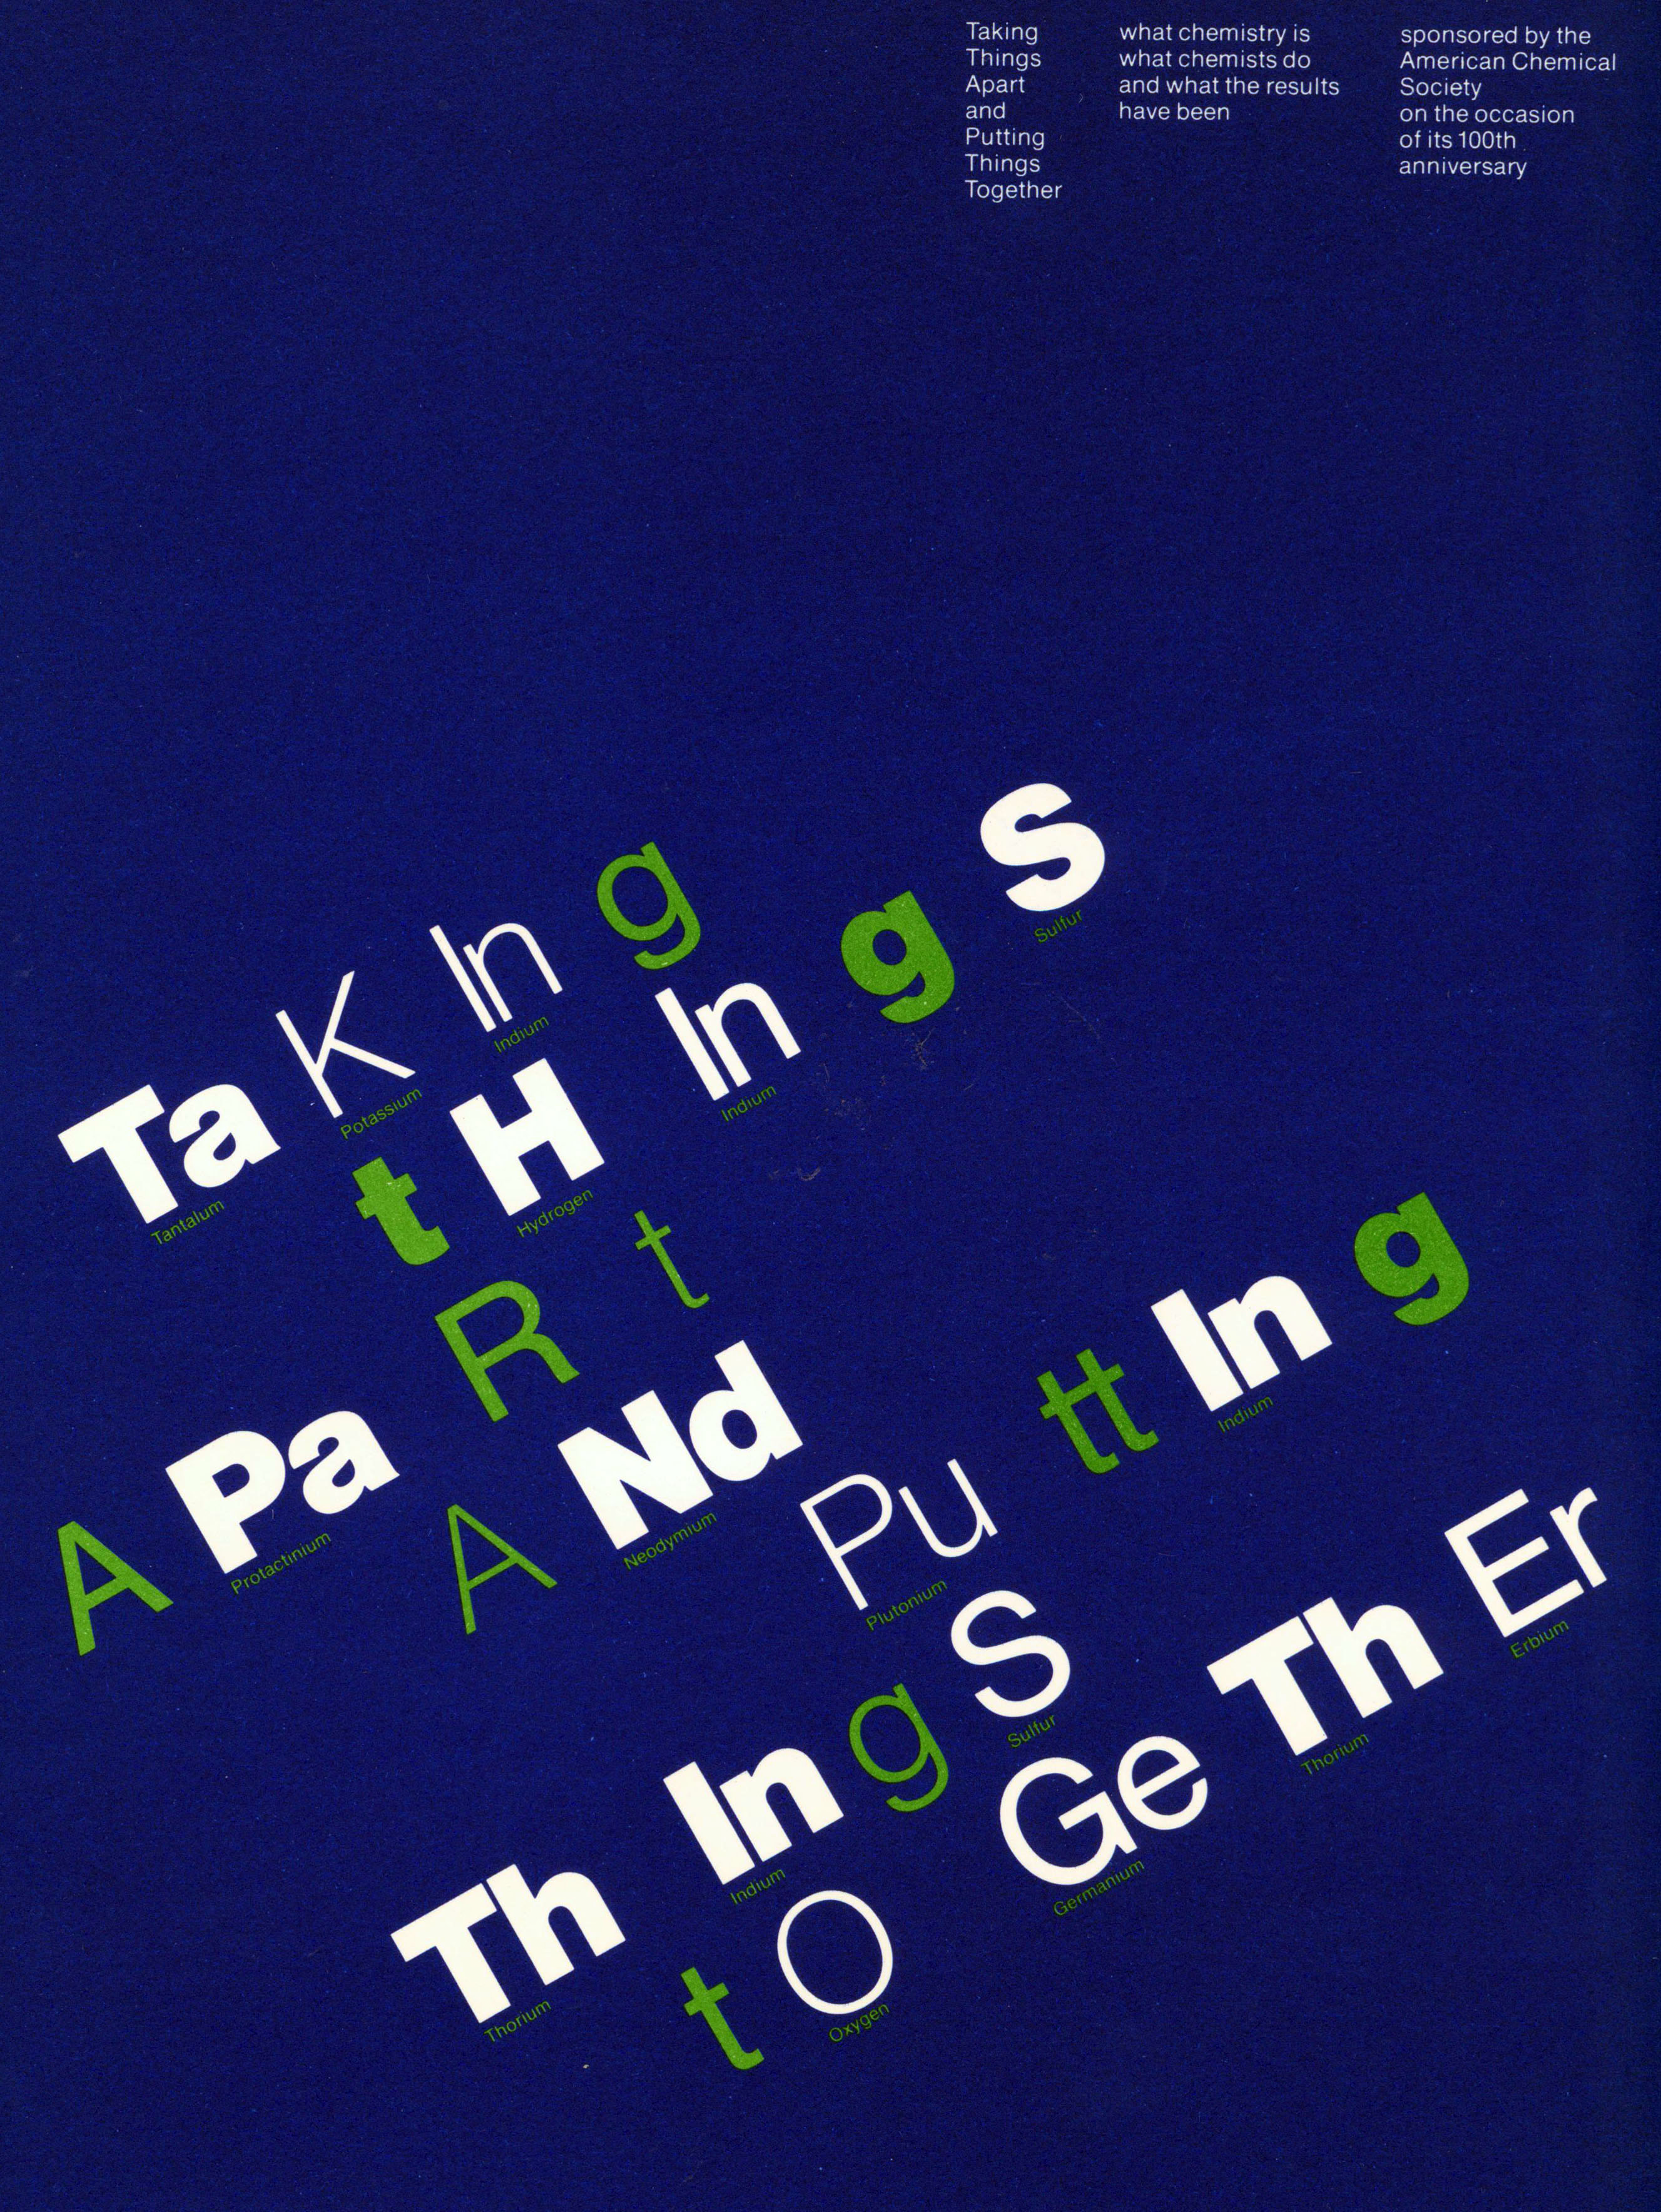 Green diagonal text over a dark blue background; letters that spell out elements from the periodic table of elements are highlighted in white.